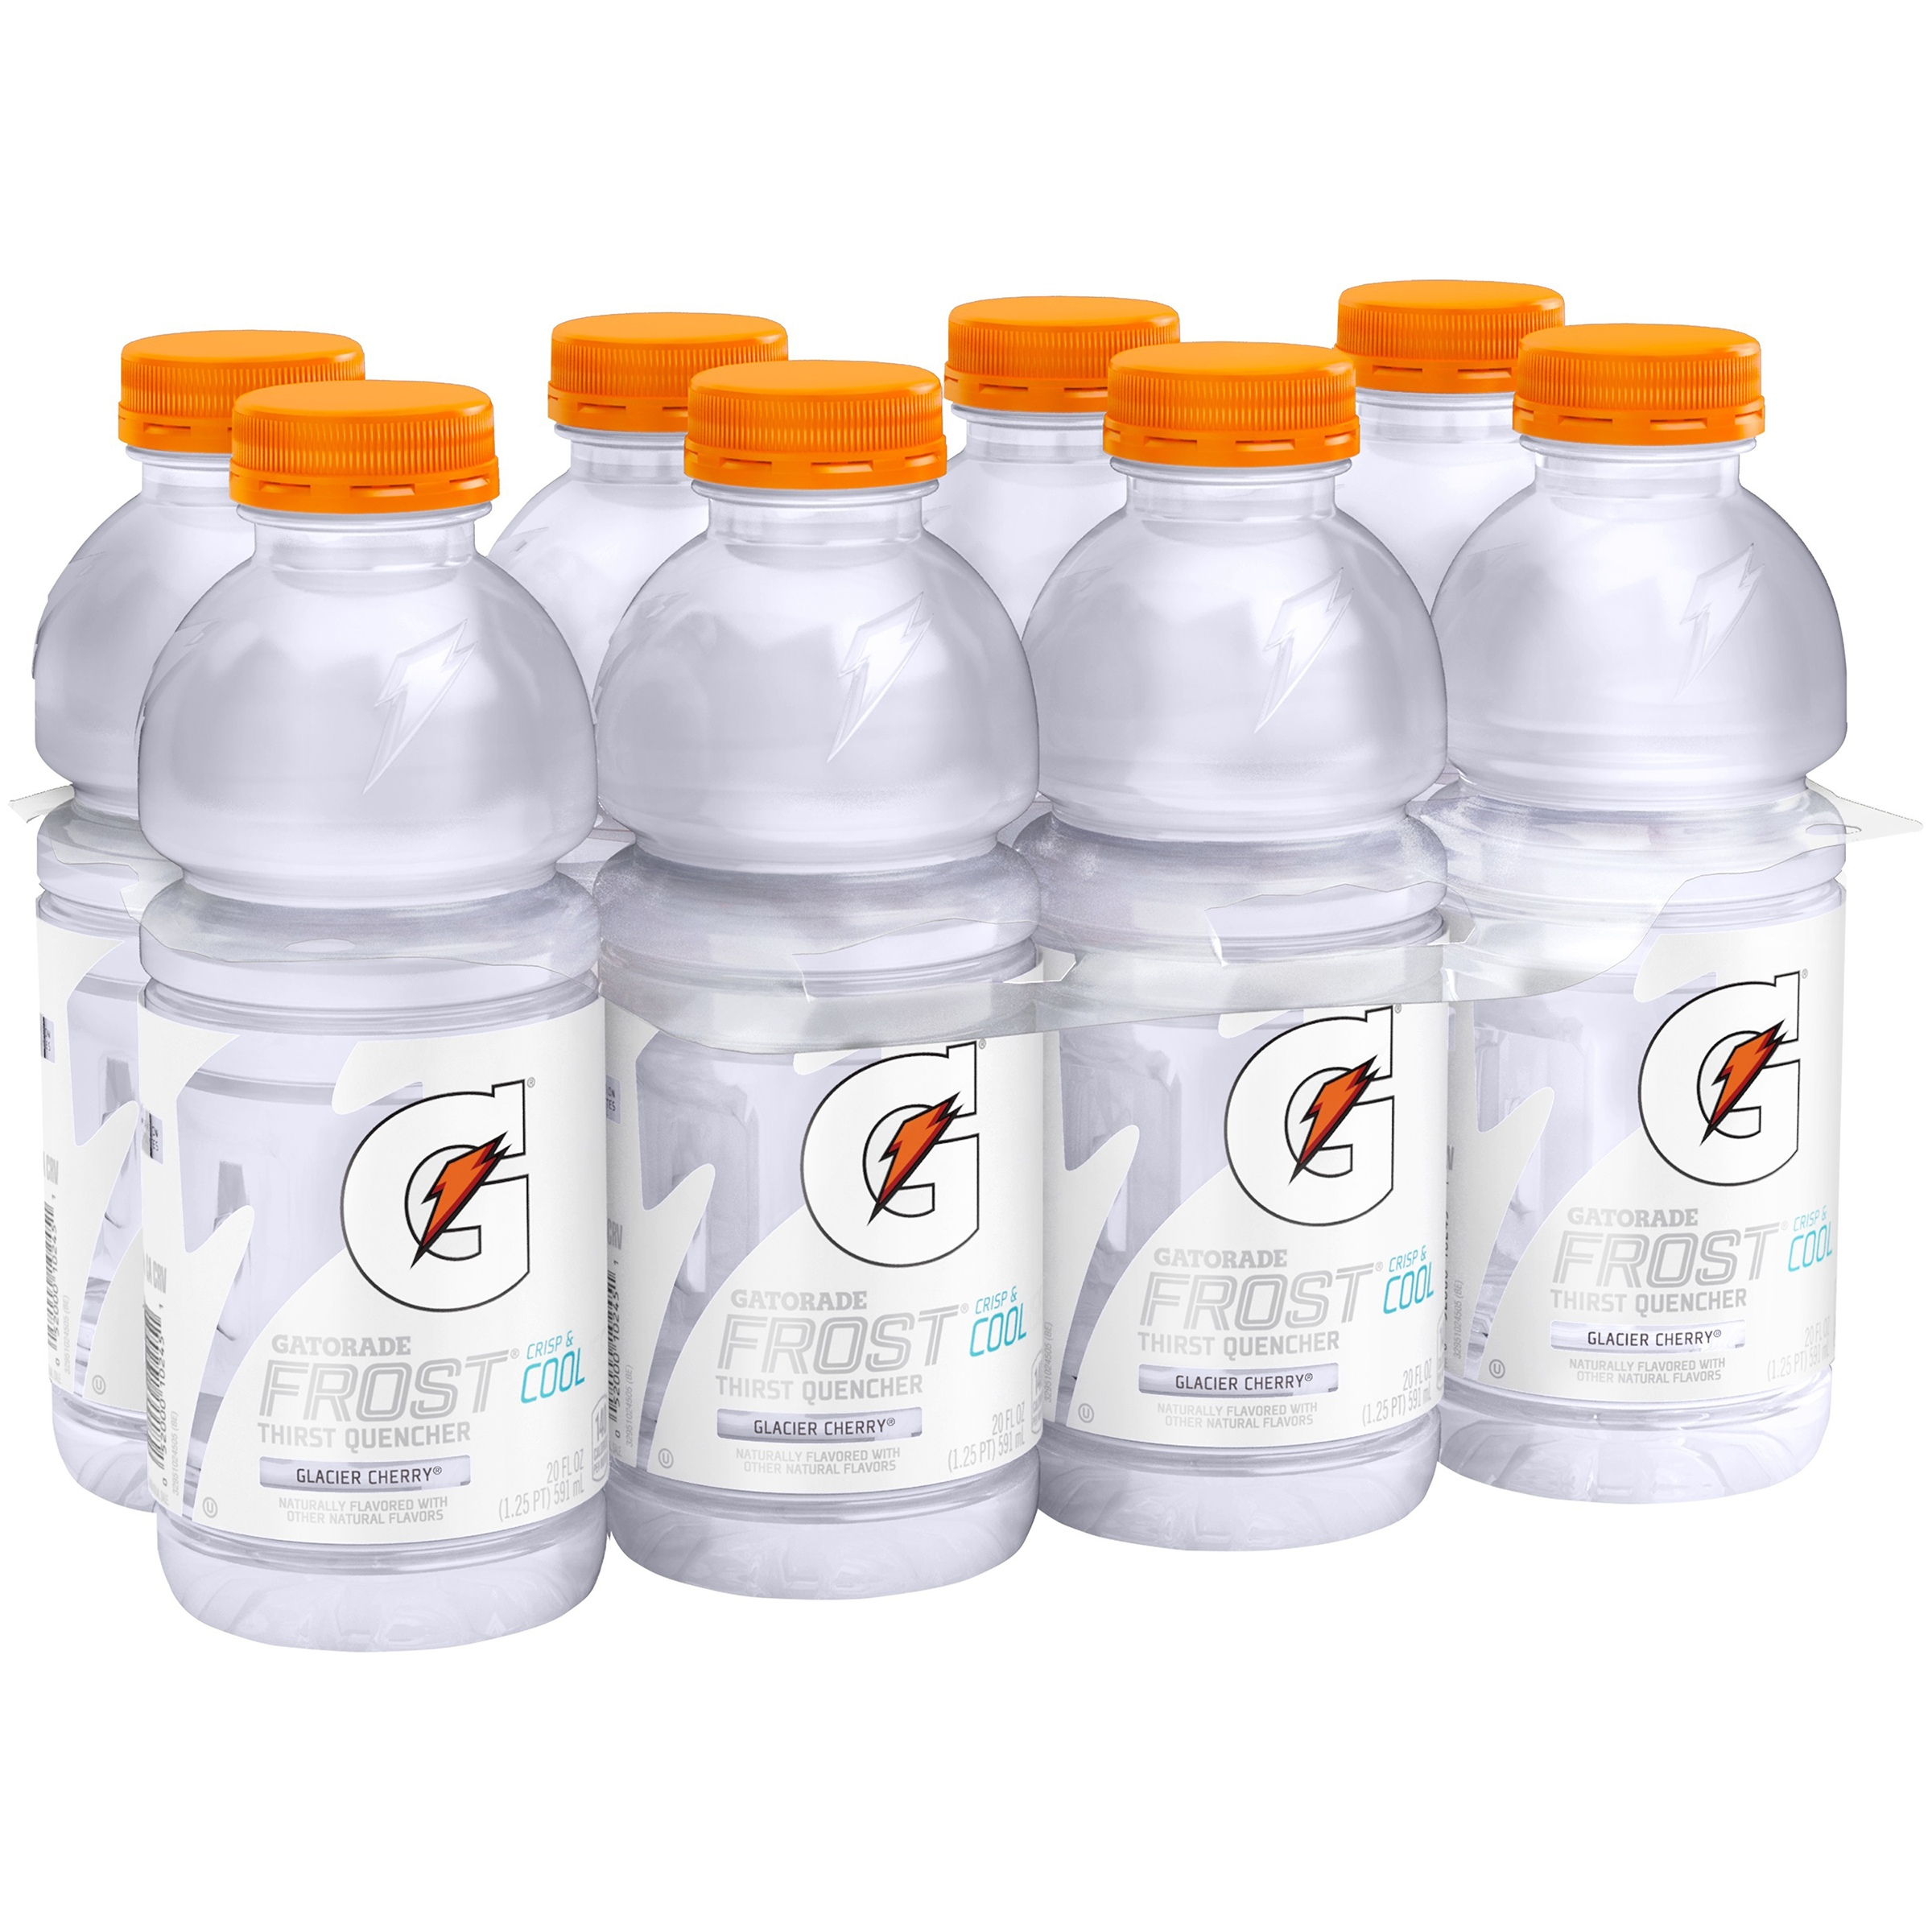 Gatorade Thirst Quencher Sports Drink, Glacier Cherry, 20 Fl Oz, 8 Count